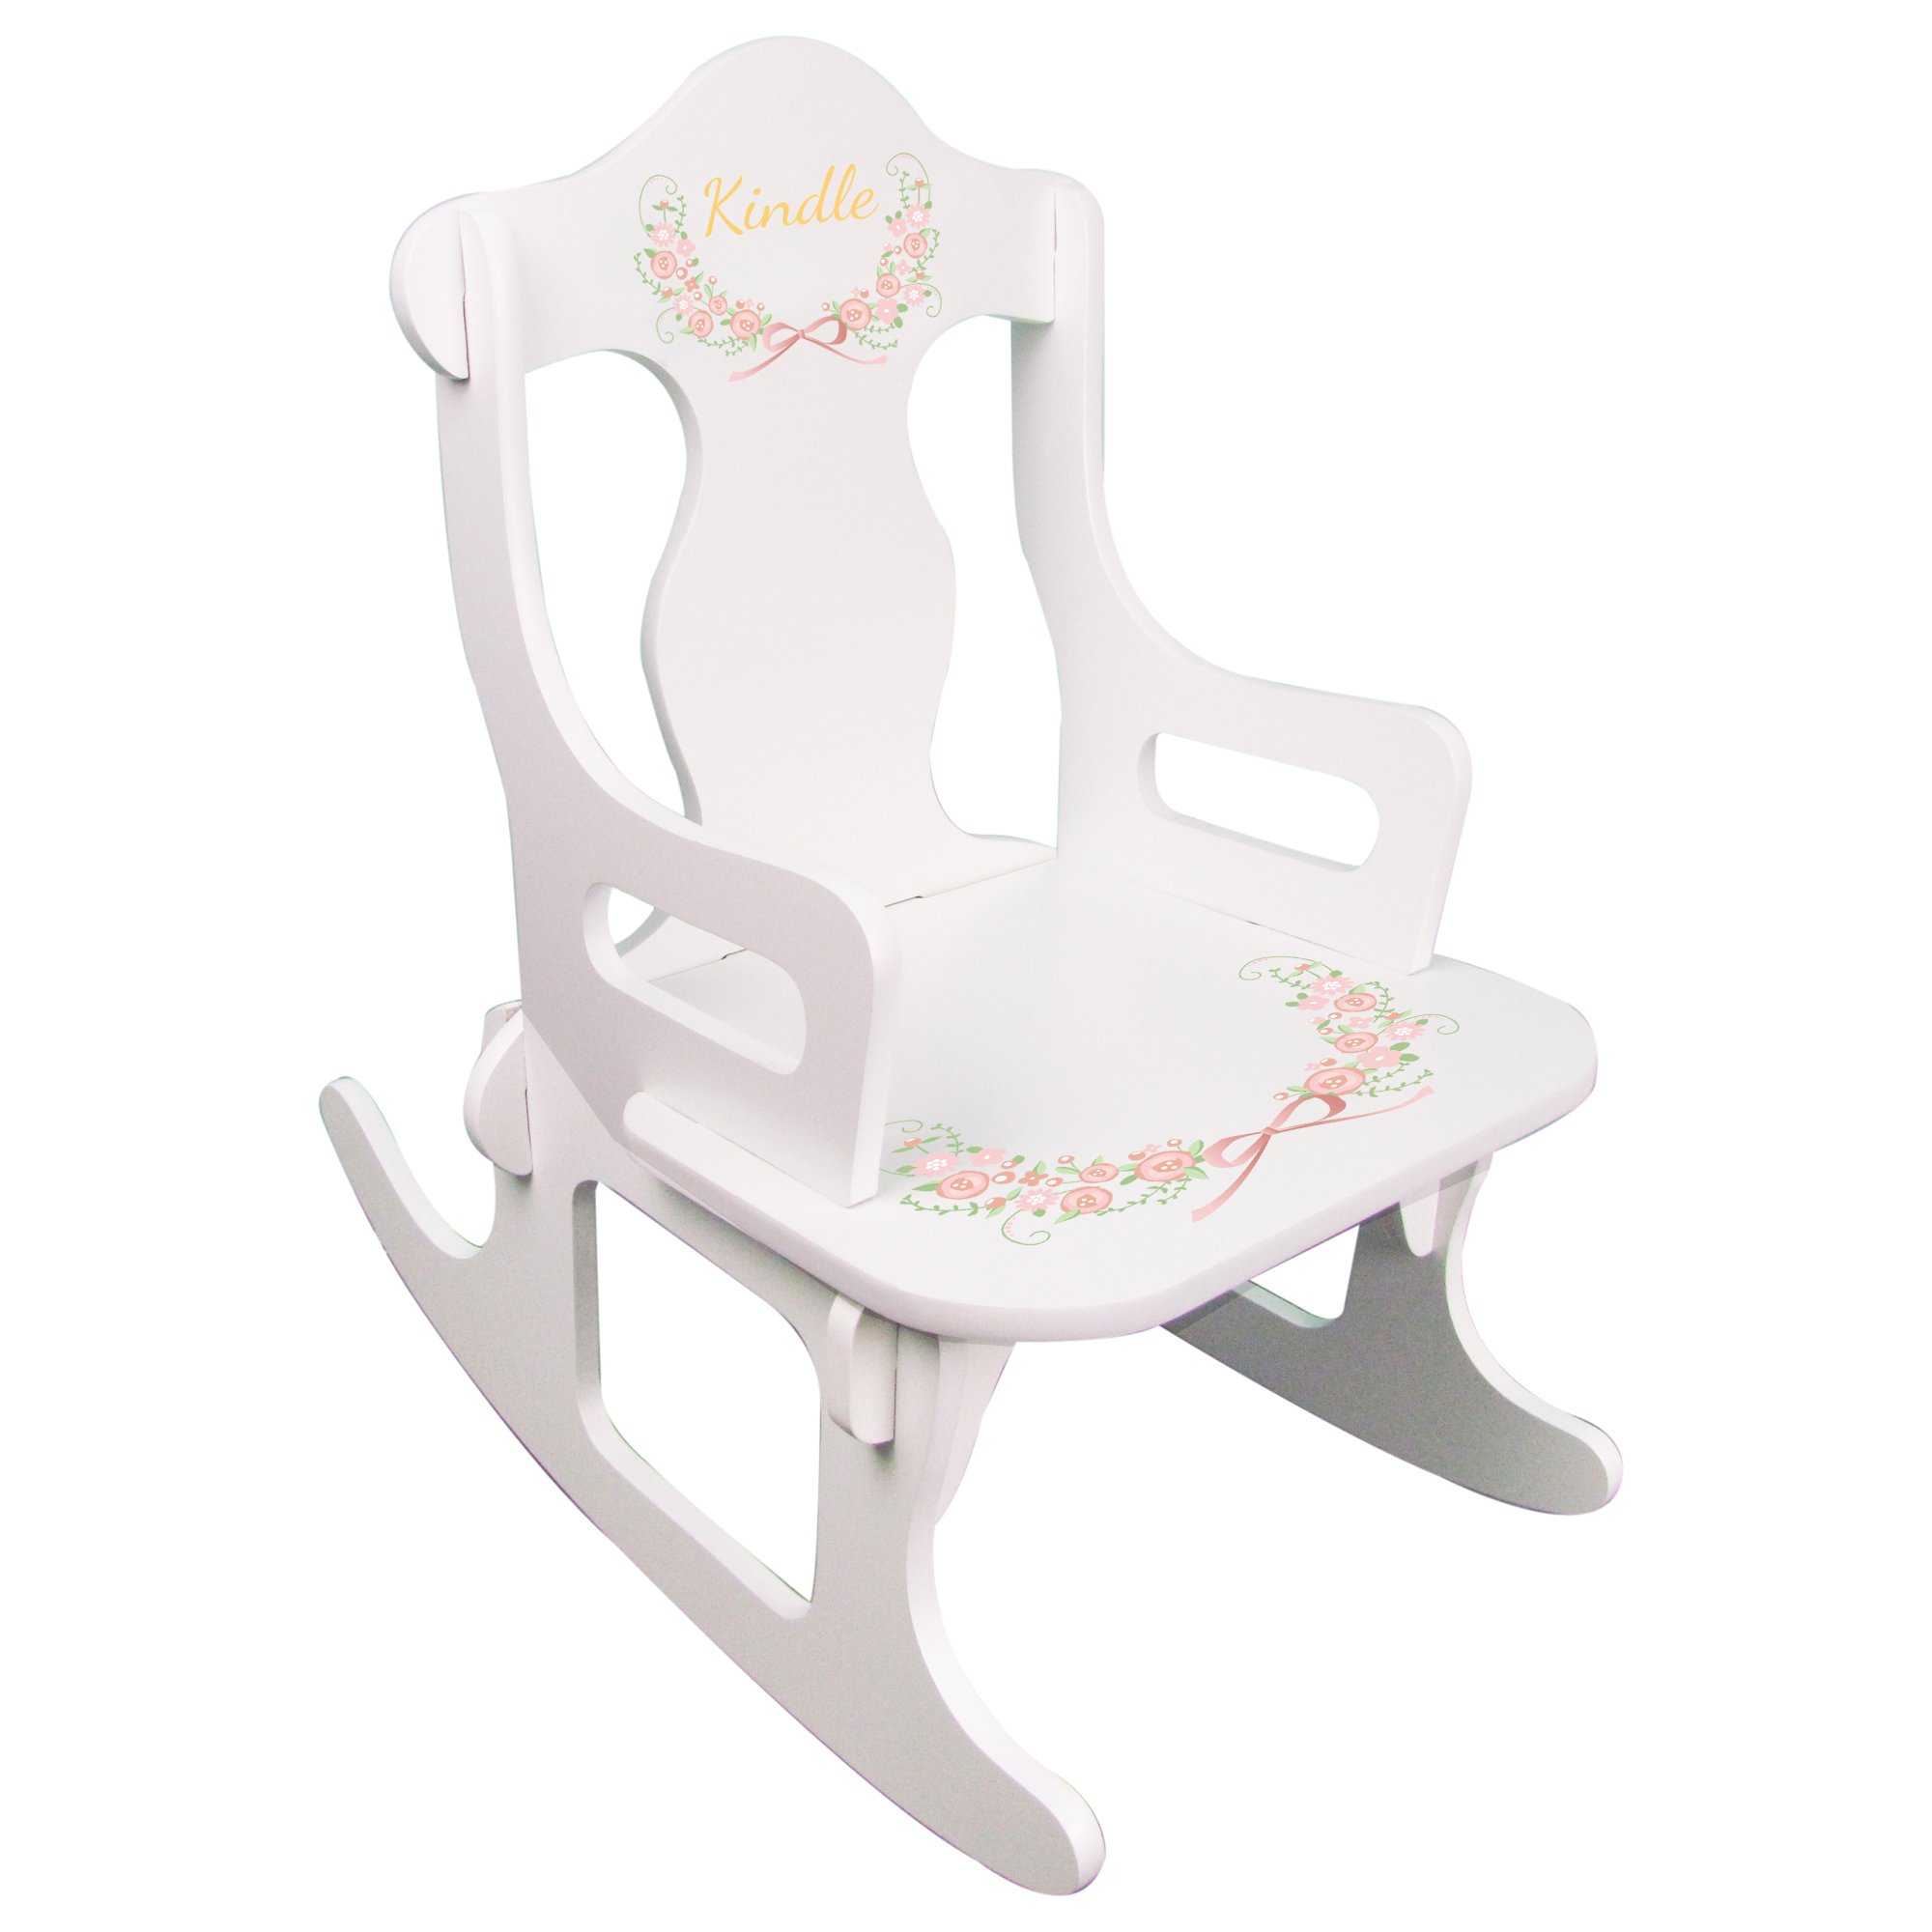 Personalized Child's Train Blush Floral Rocking Chair